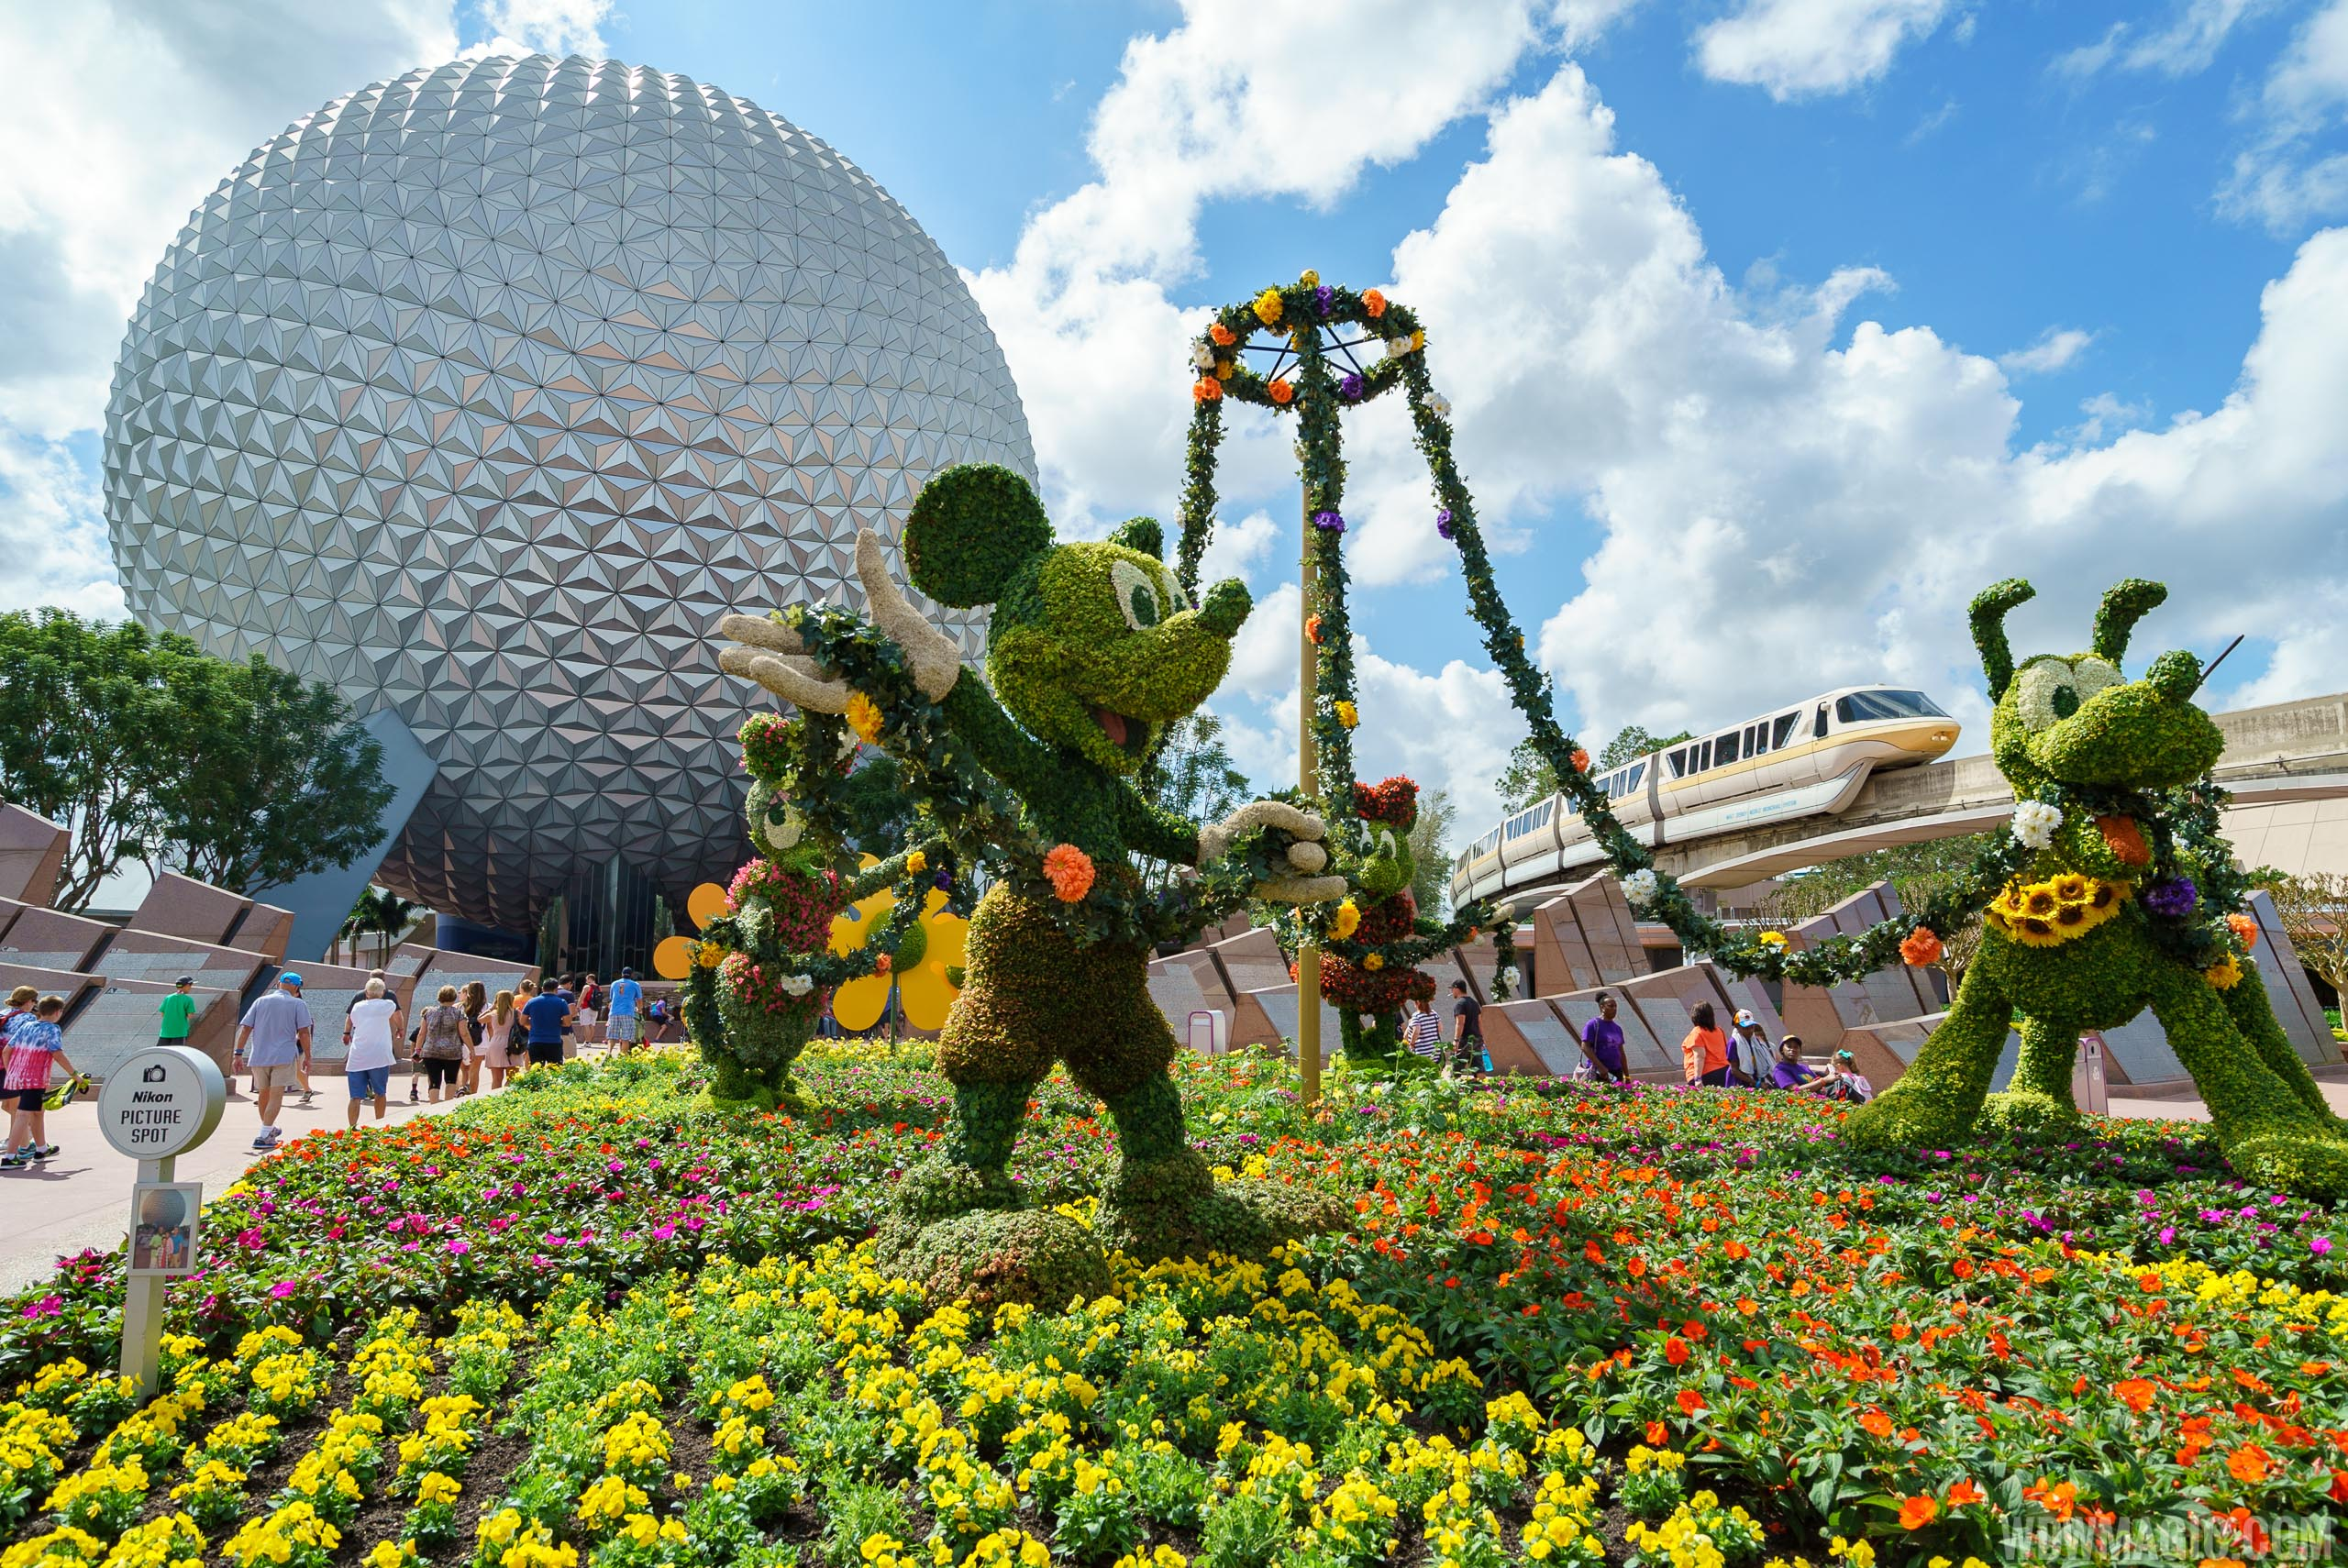 New Outdoor Kitchens and topiaries to join the 2017 Epcot.